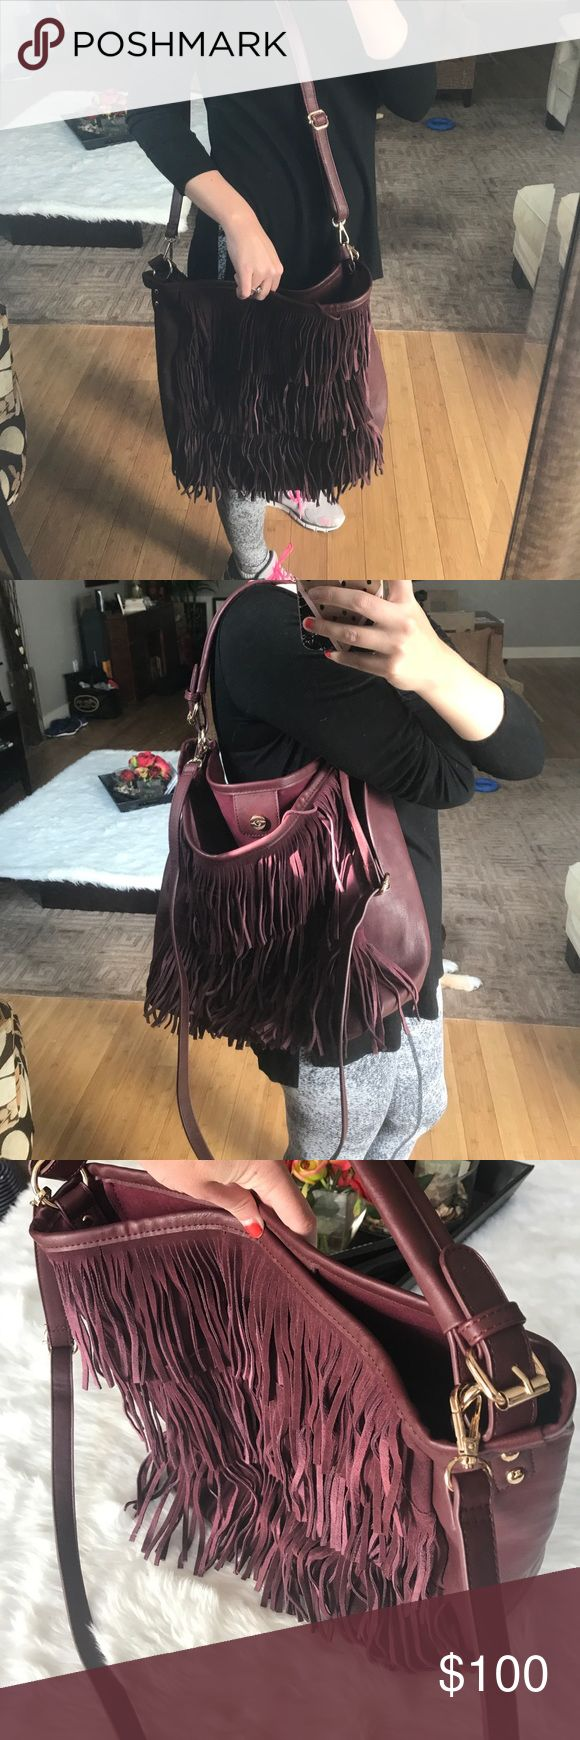 Asos fringe front hobo with strap This maroon Fringe Hobo is a beautiful shade and in excellent condition.  Come with detachable shoulder strap.  Minor signs of wear on inside. Outside and bottom look clean.  MAKE AN OFFER Asos Bags Hobos